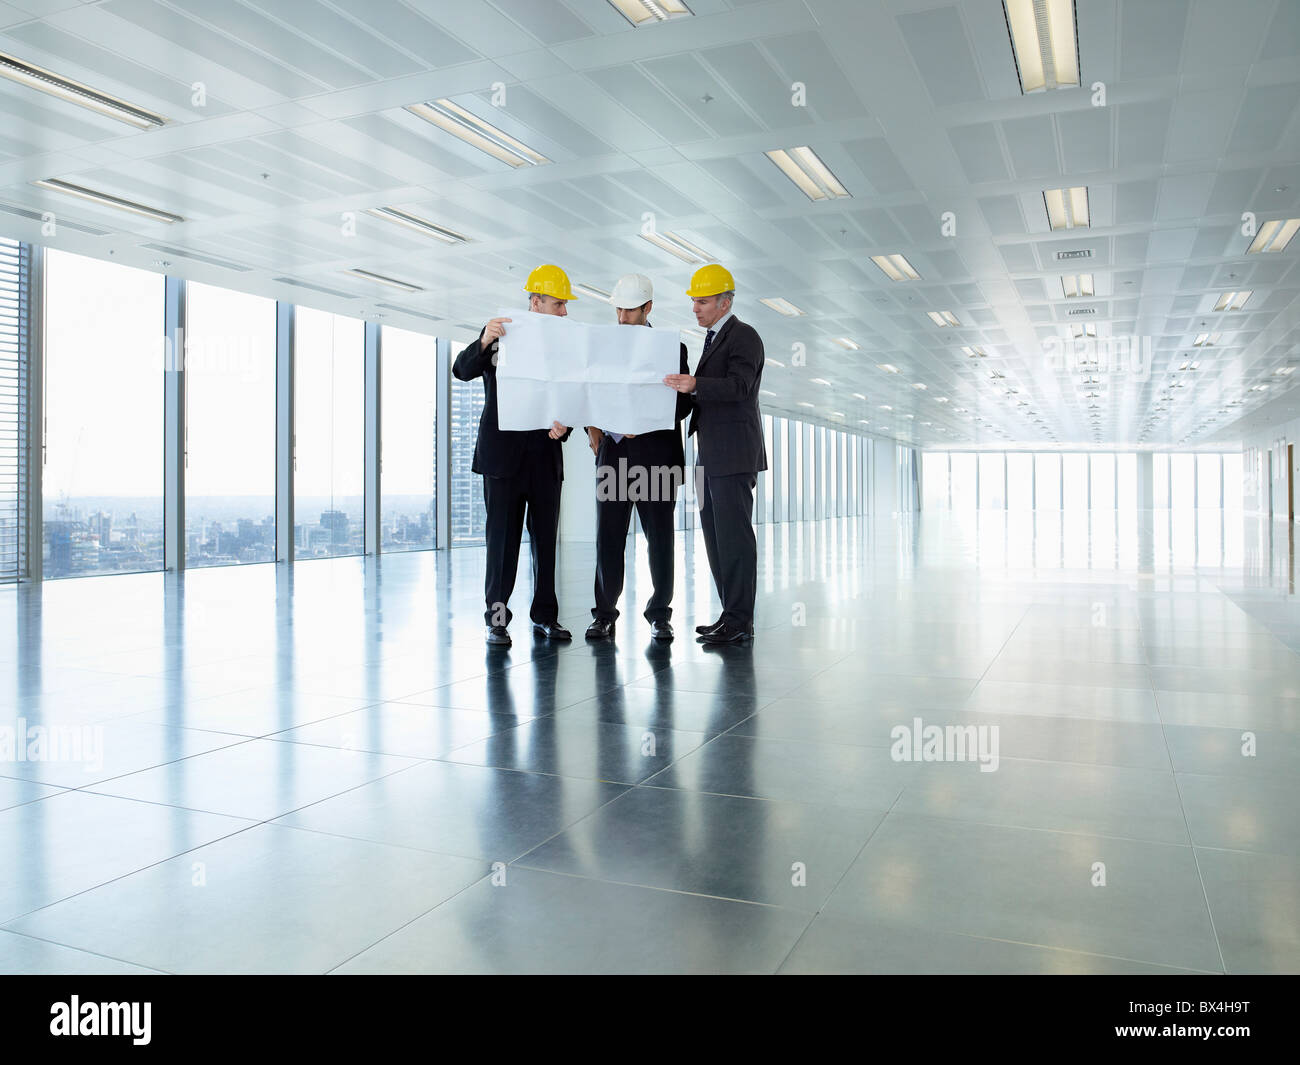 Three executives in hardhats looking at plans in empty office space - Stock Image